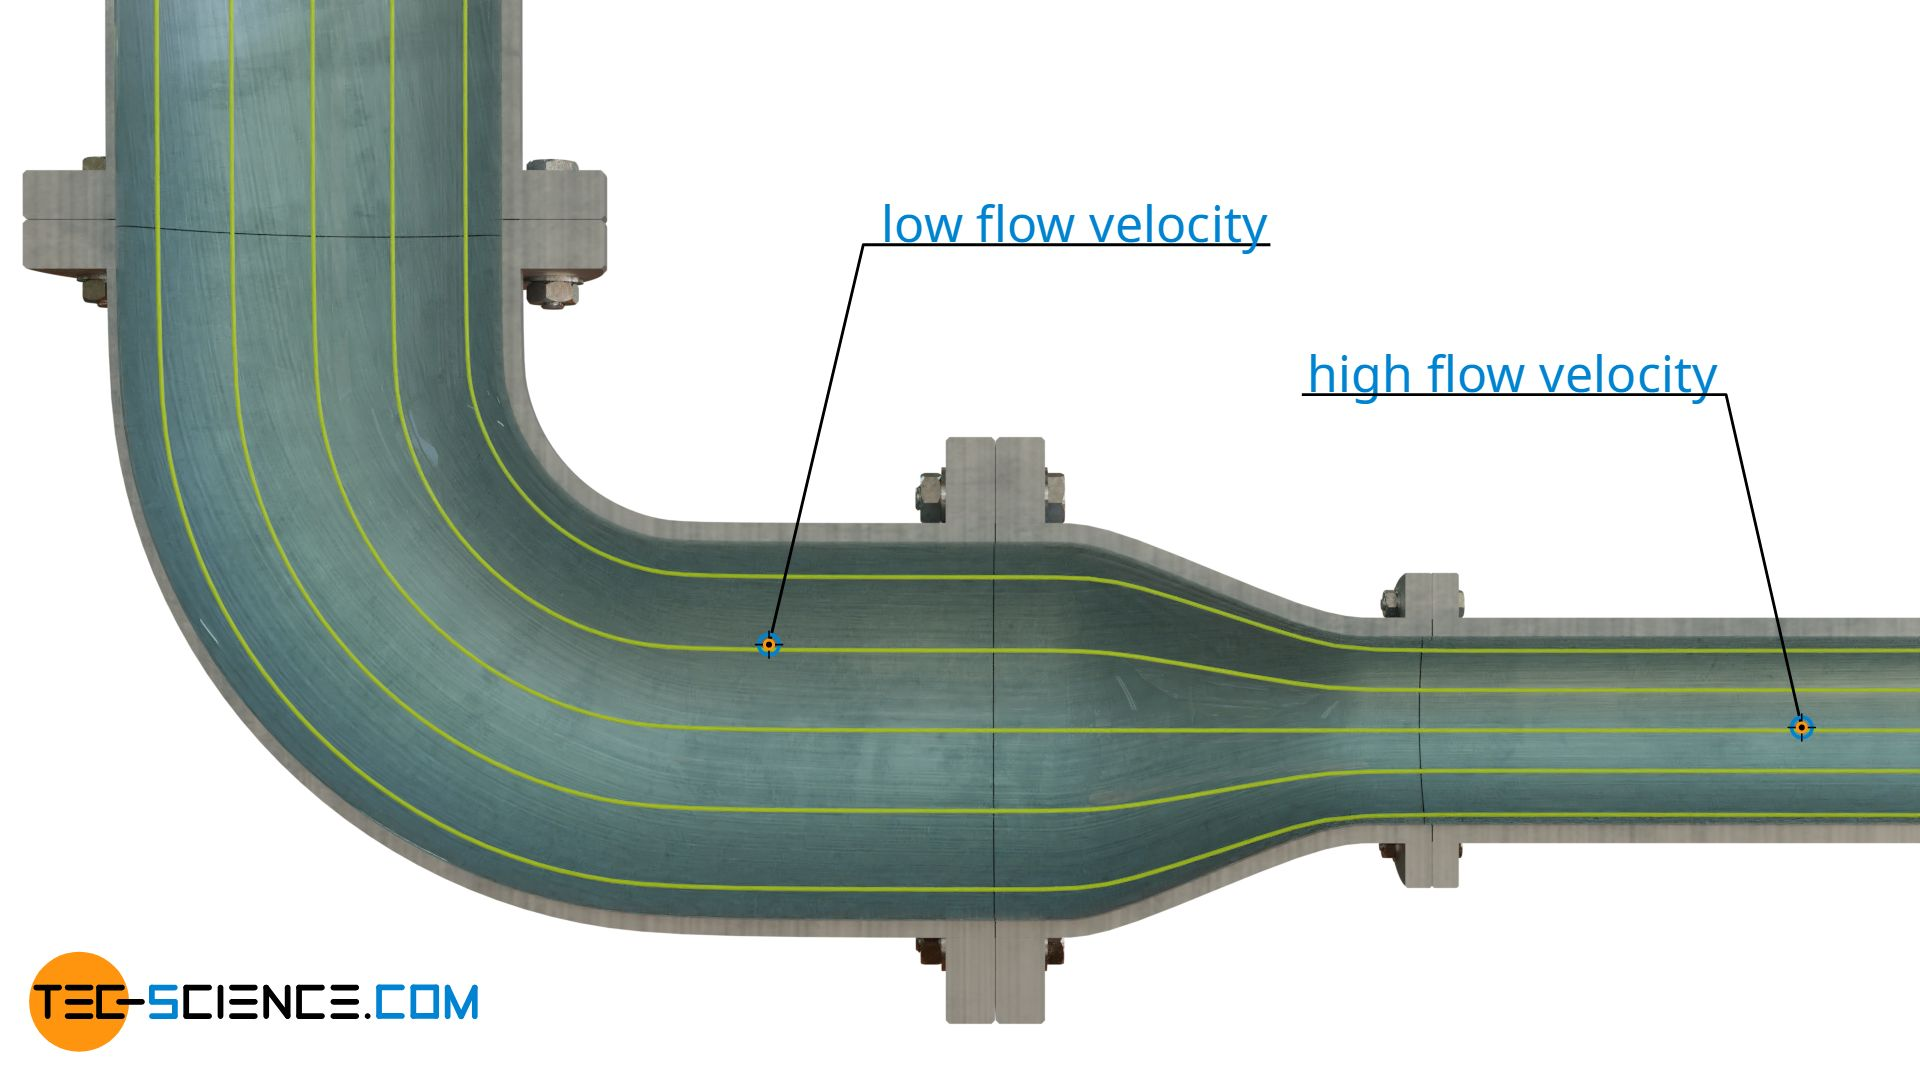 Streamline density as a measure for the flow velocity